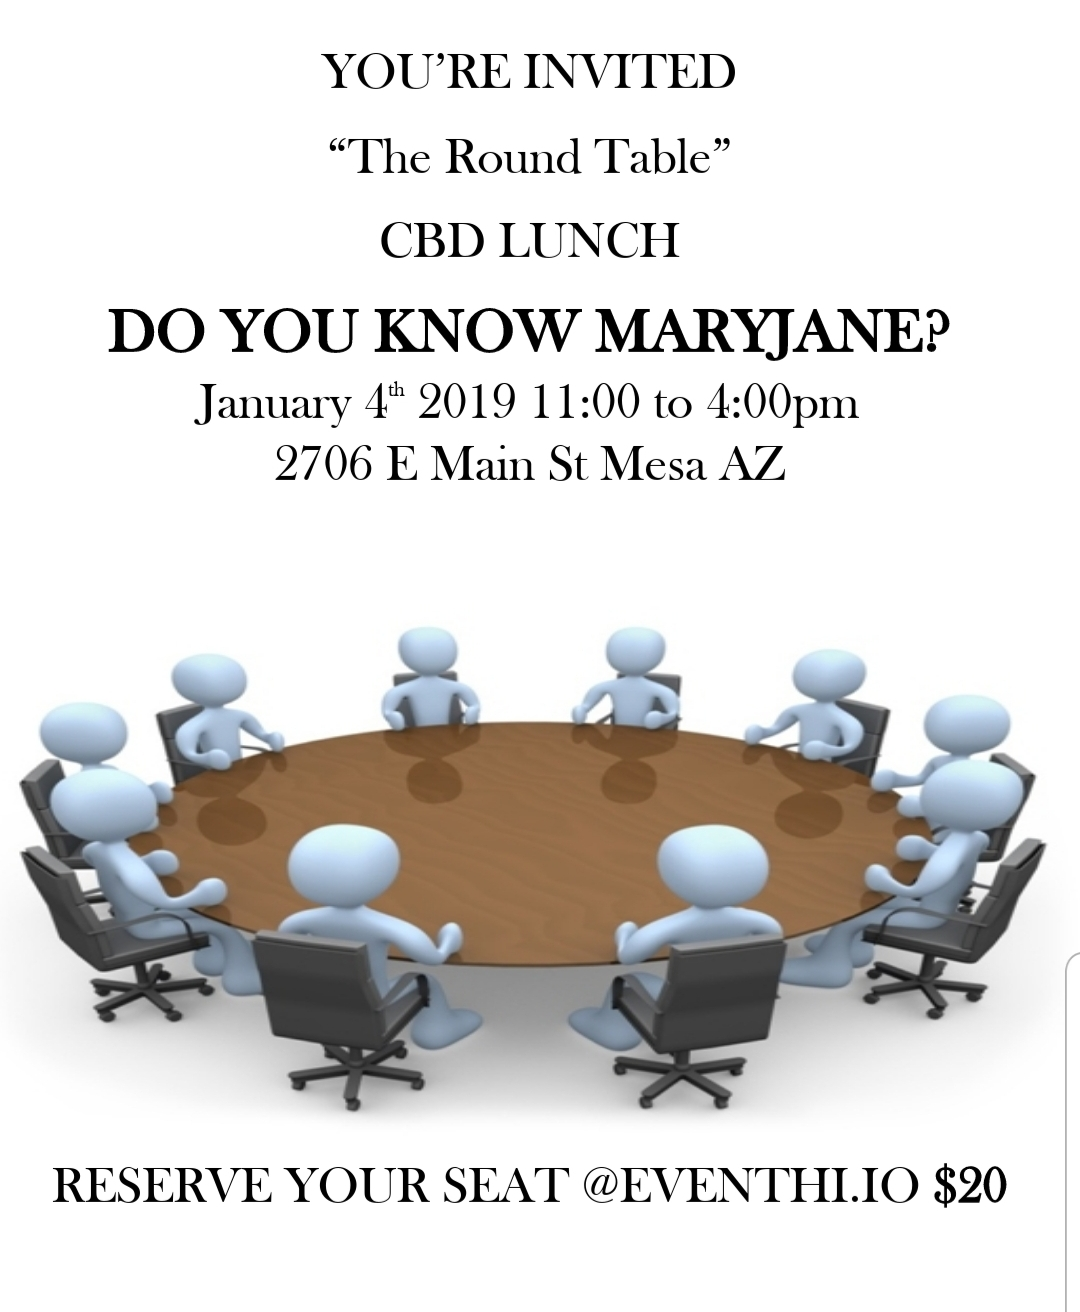 The Round Table CBD Lunch